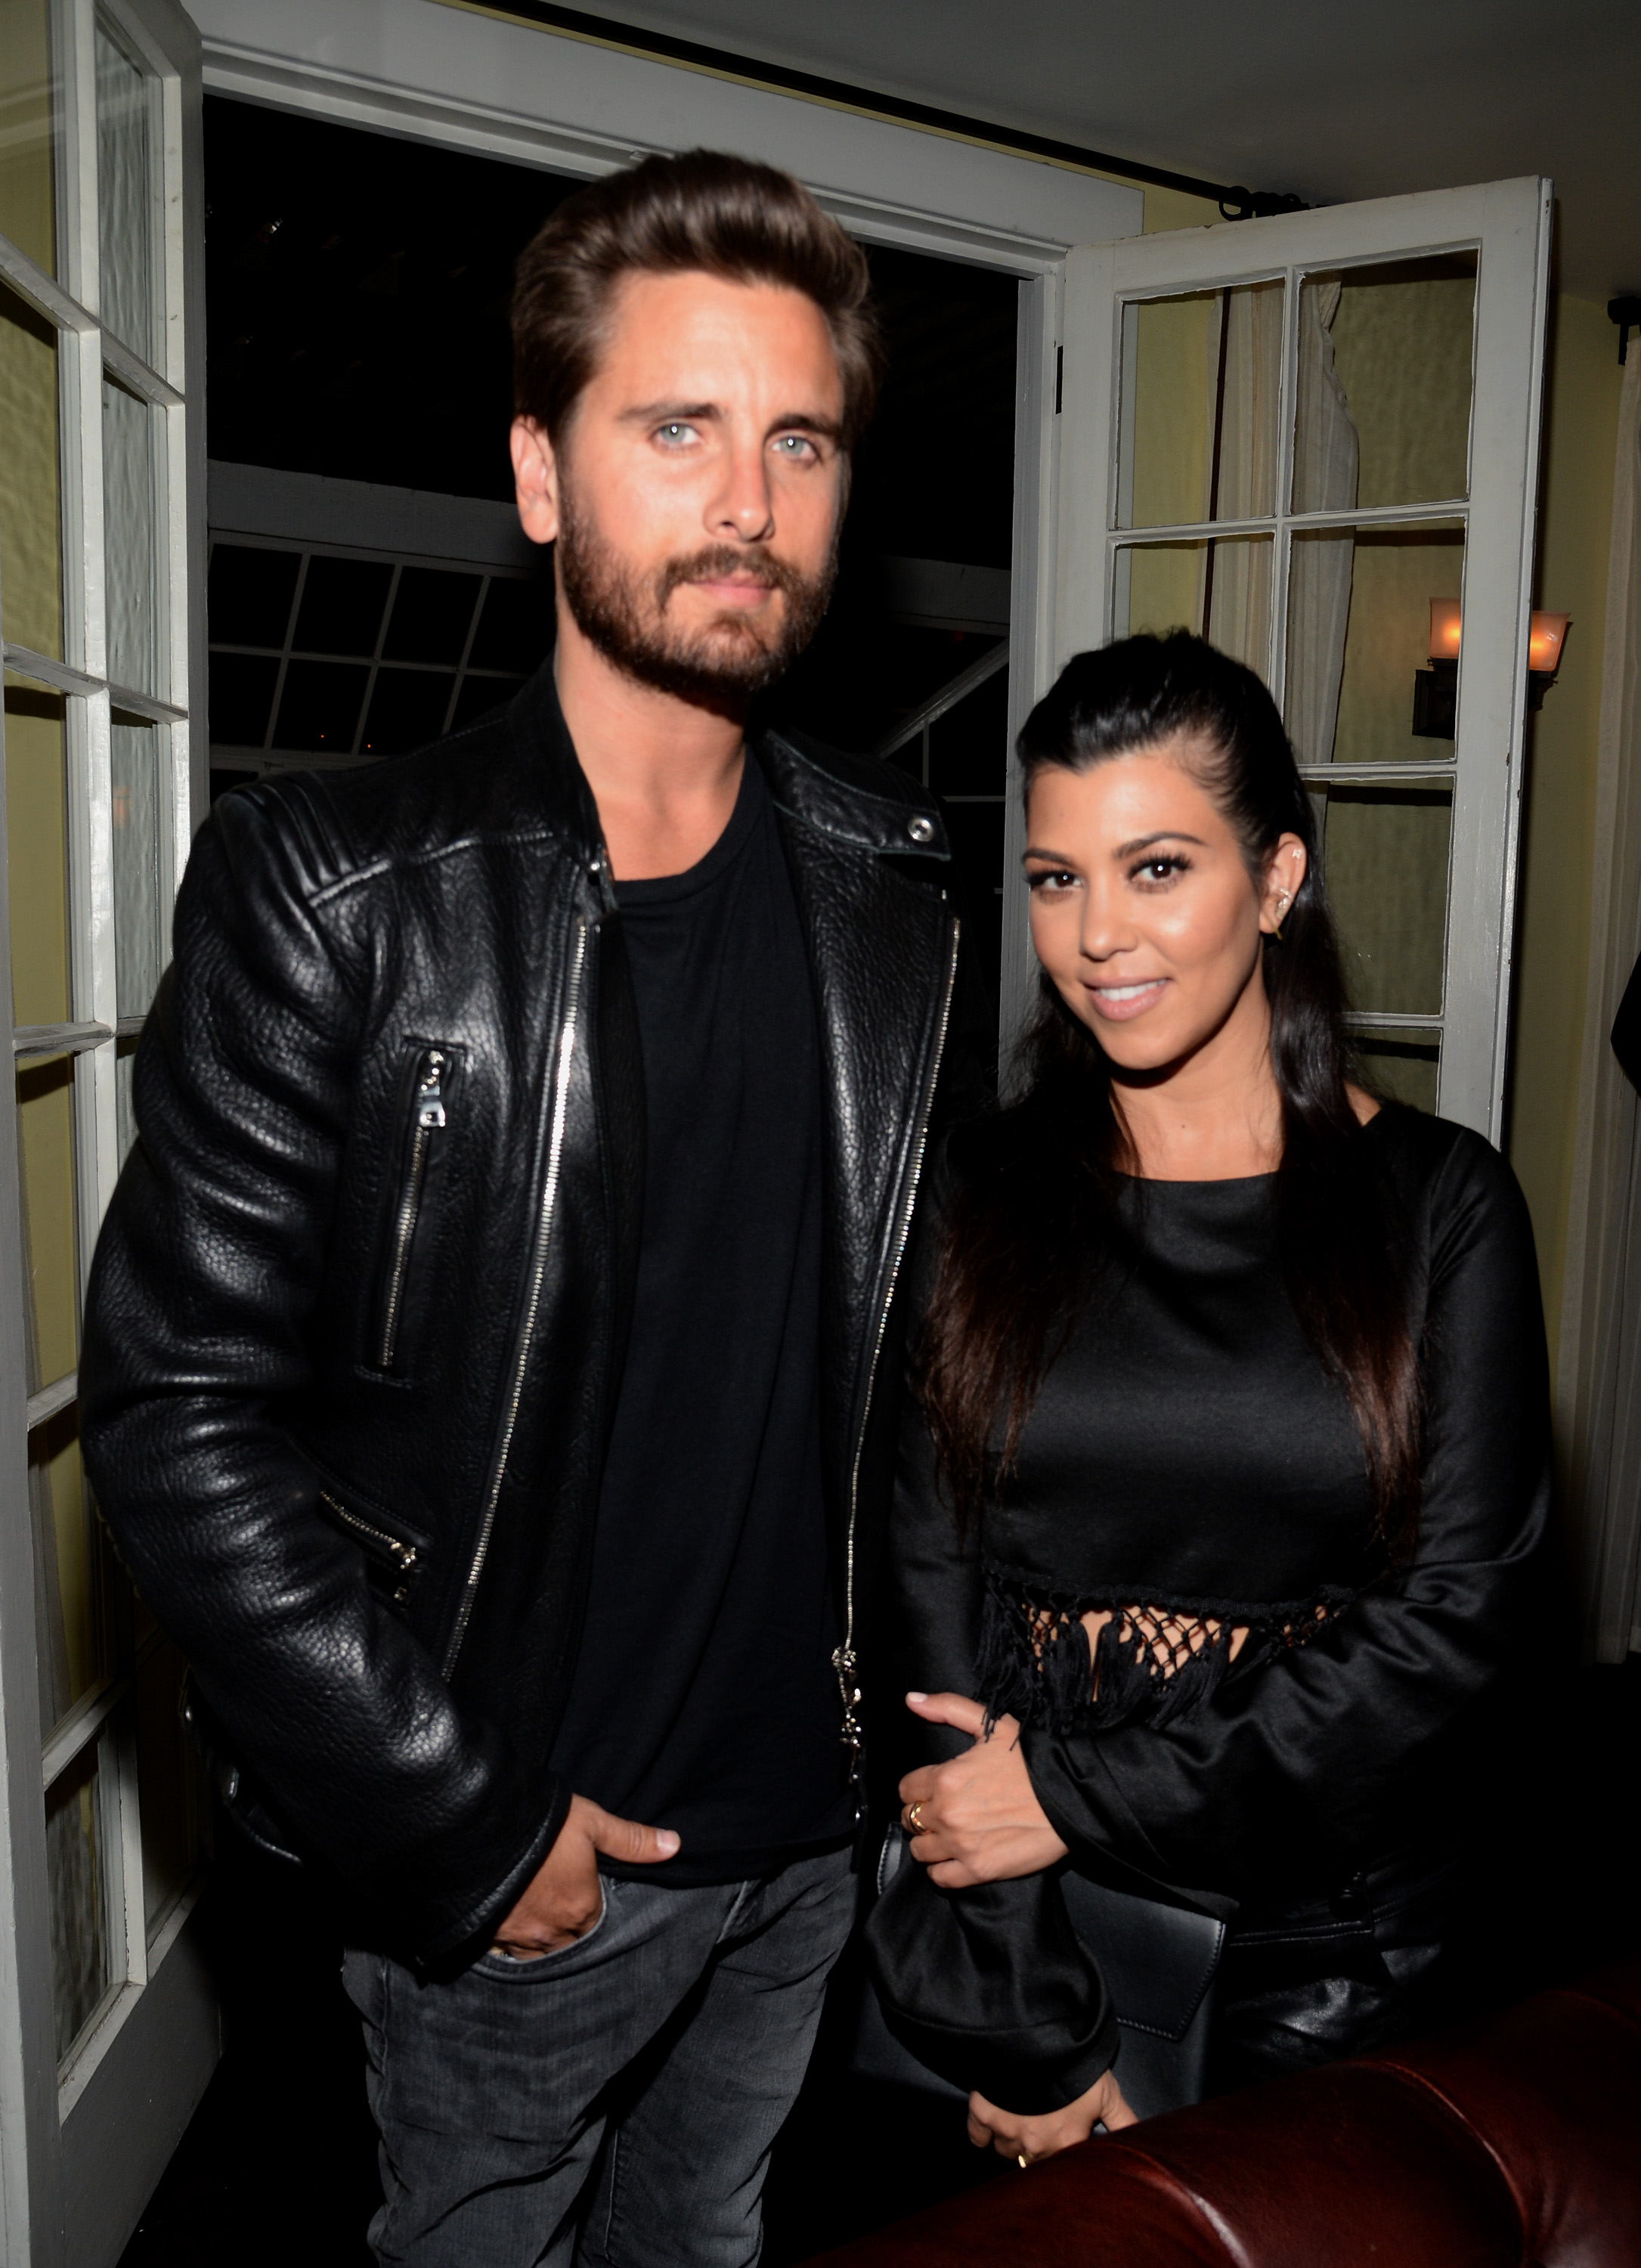 Are Scott Disick and Kourtney getting back together?